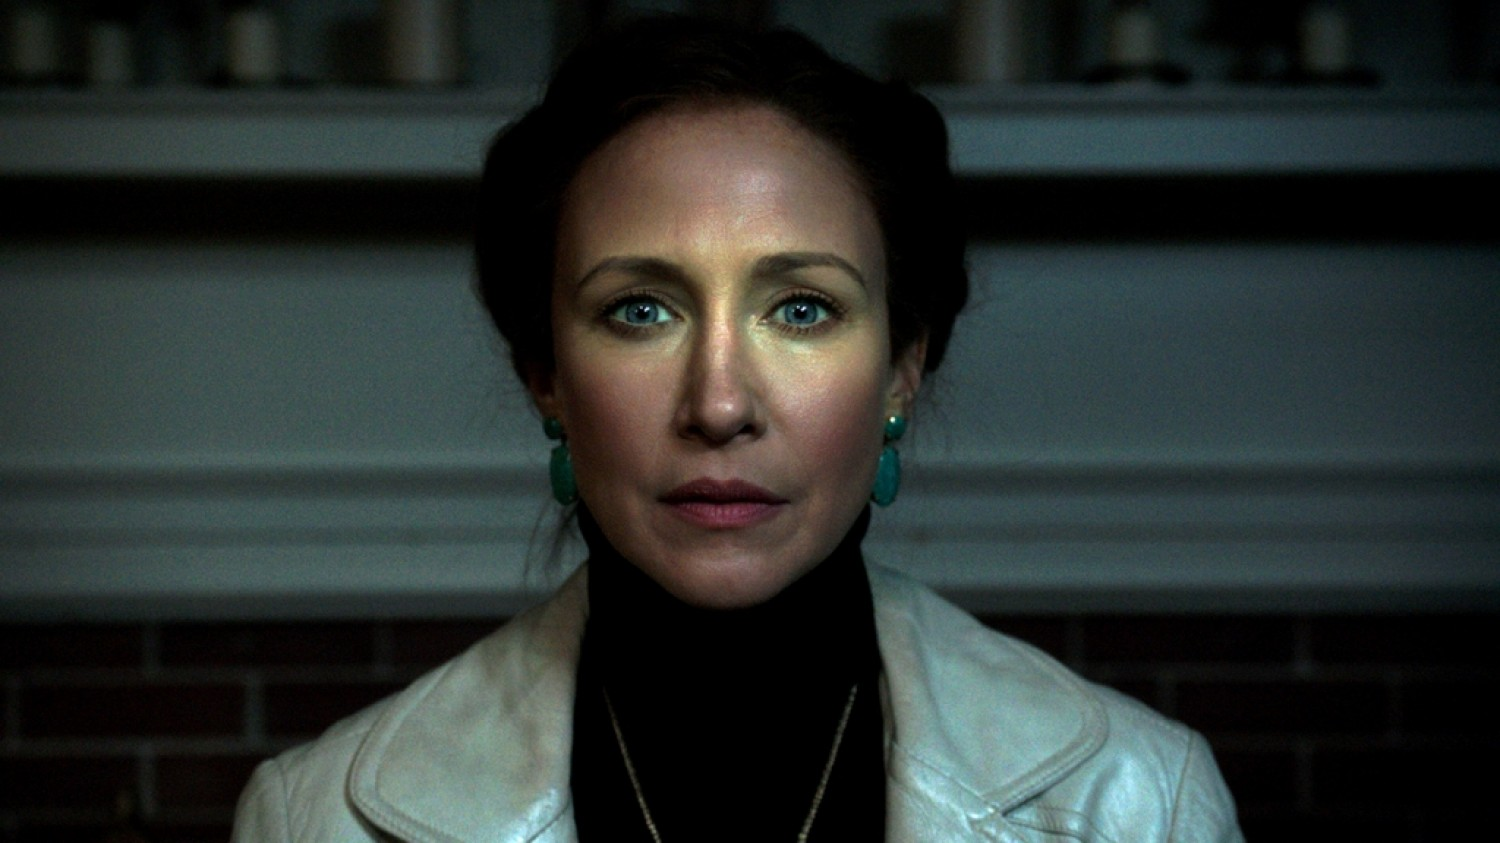 The Conjuring 2 (2016) James Wan - Movie Review